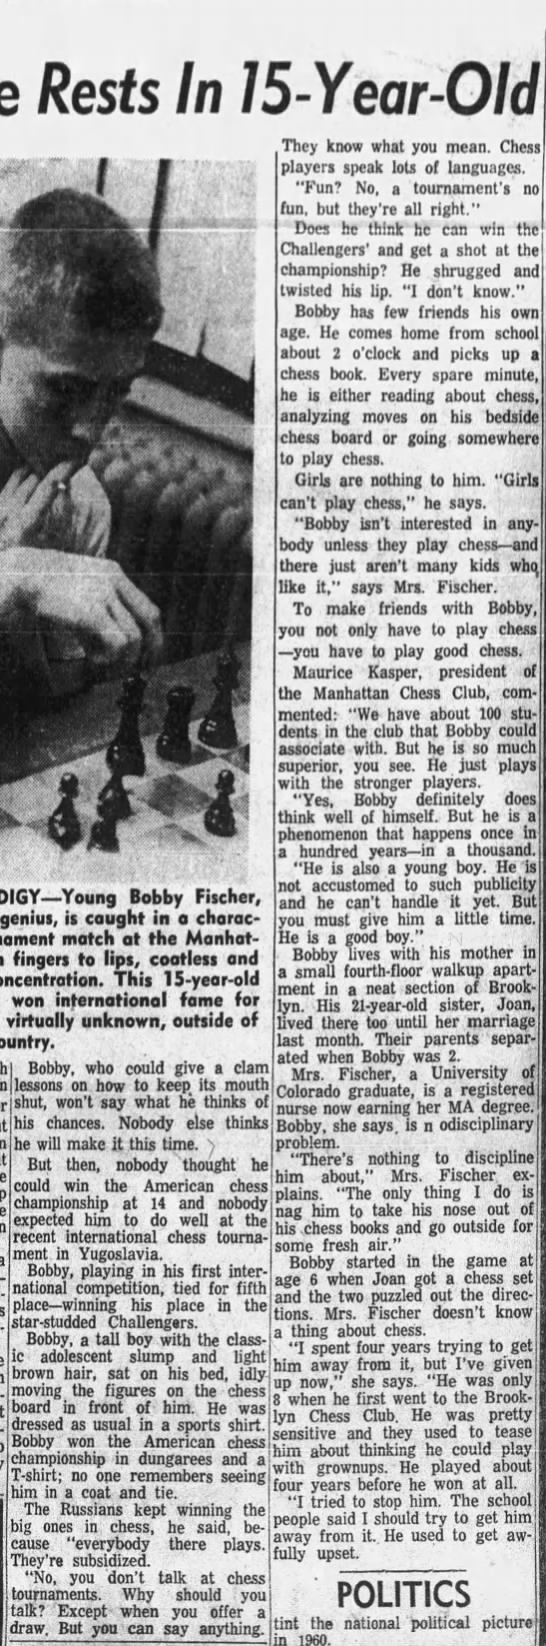 Nation's Chess Hope Rests In 15-Year-Old (Column 2) -